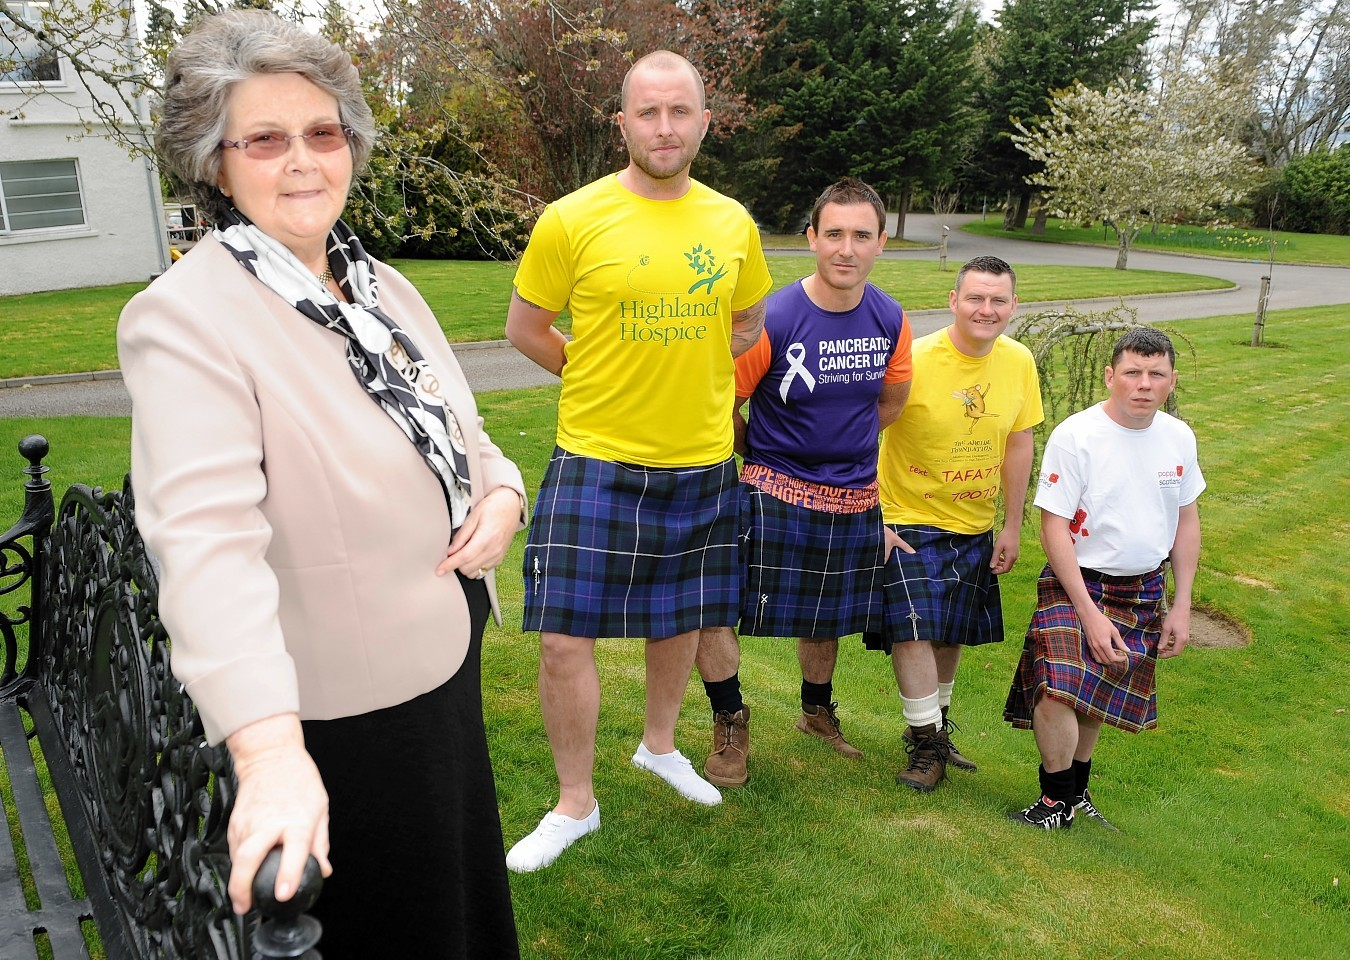 Donald MacLennan, Jamie Harkness, Brian Innes and Graeme Anderson with Christine Macdonald